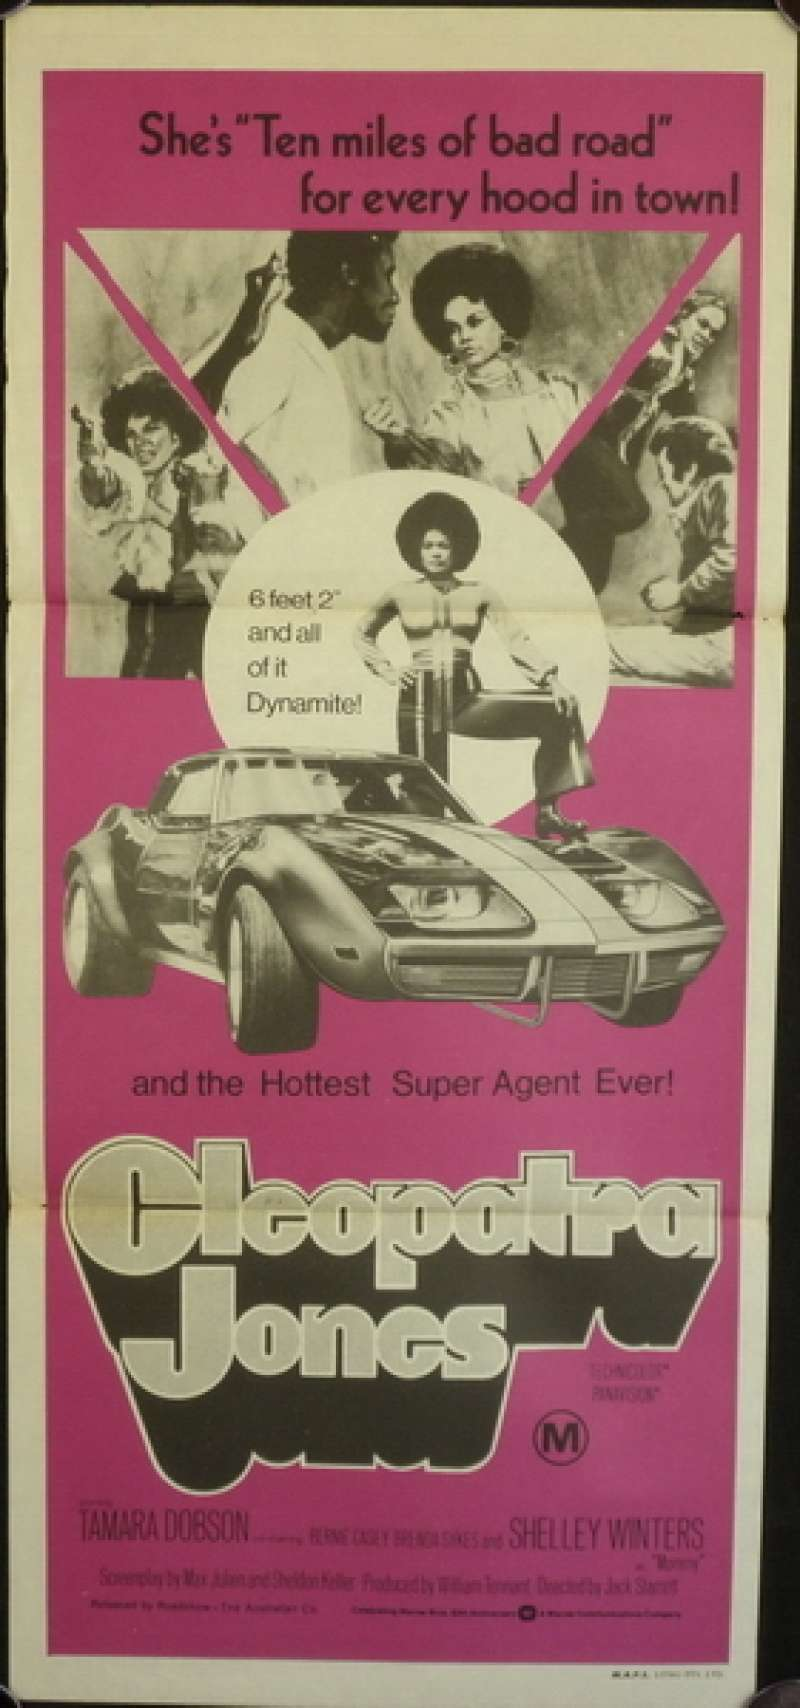 All About Movies Cleopatra Jones Poster Australian Daybill Movie Poster